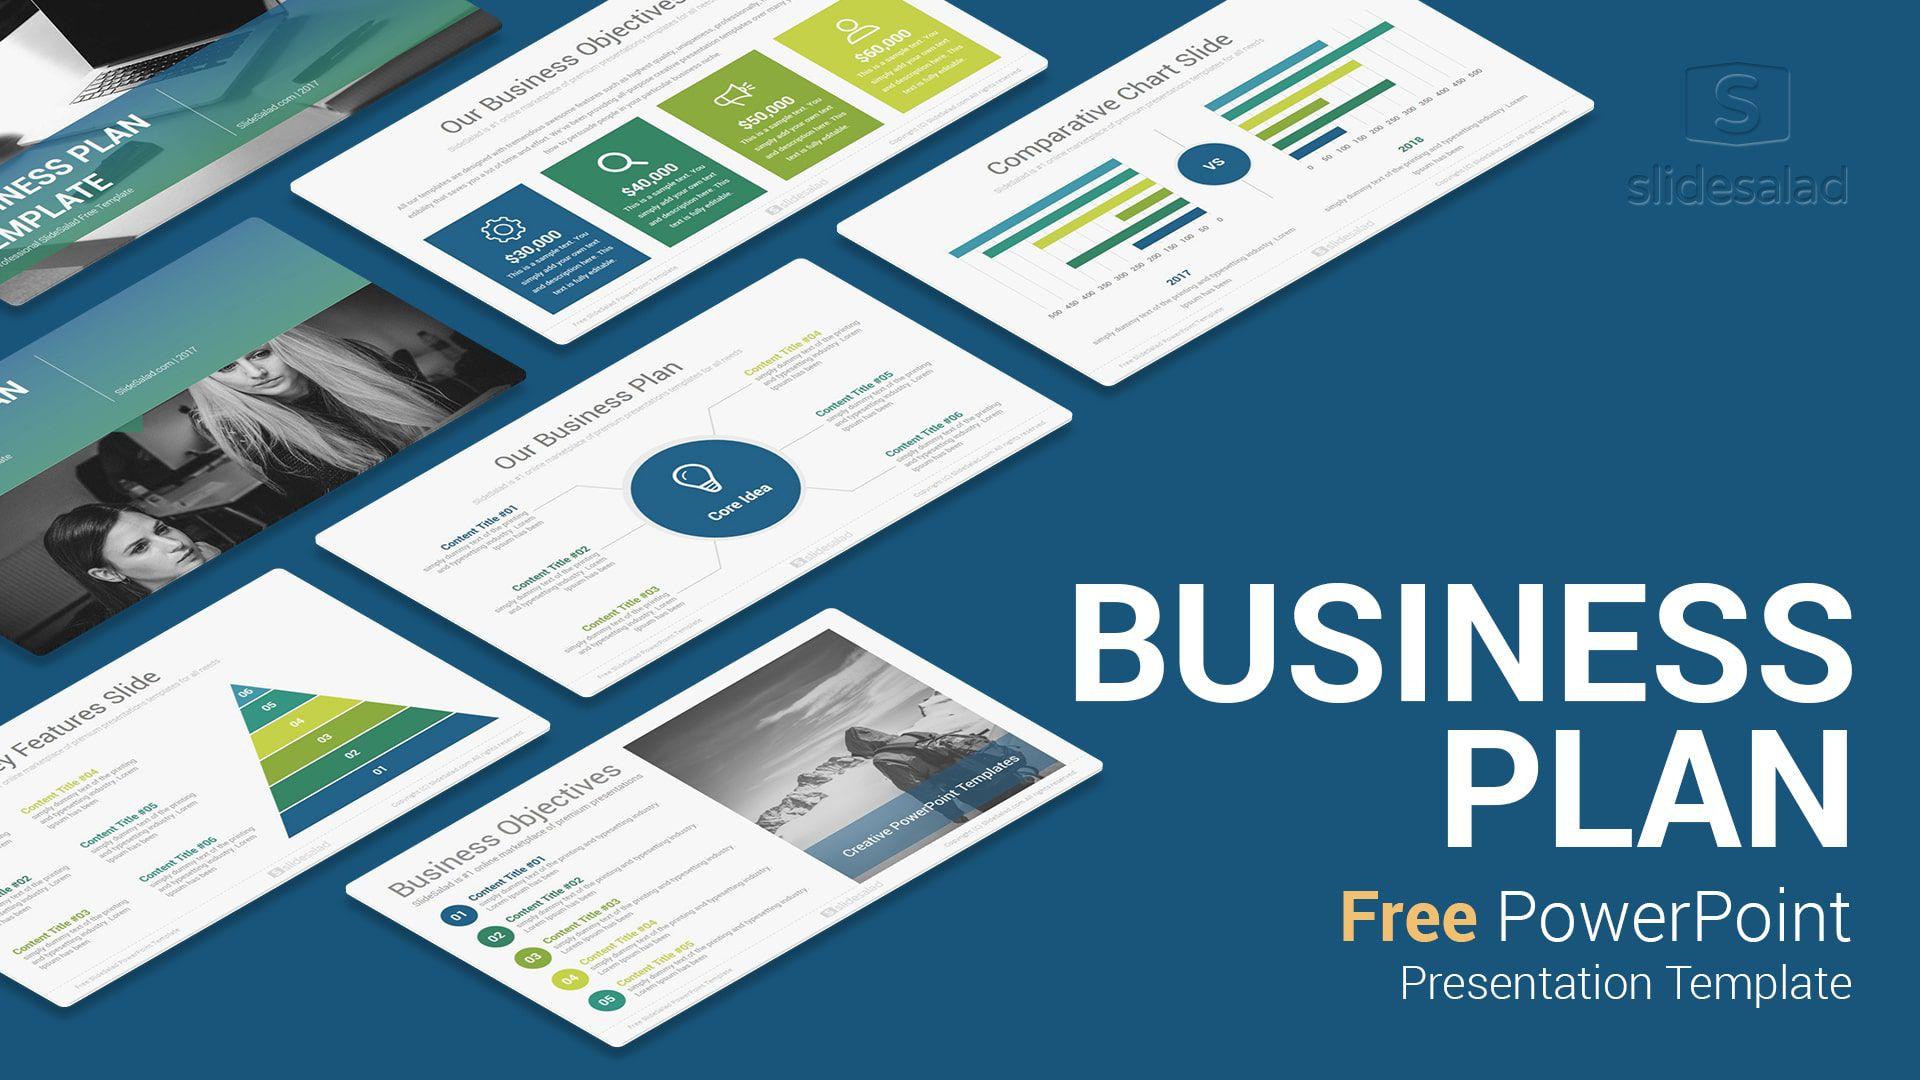 007 Best Free Busines Plan Template Ppt High Definition  2020 Download Startup 30 60 90Full